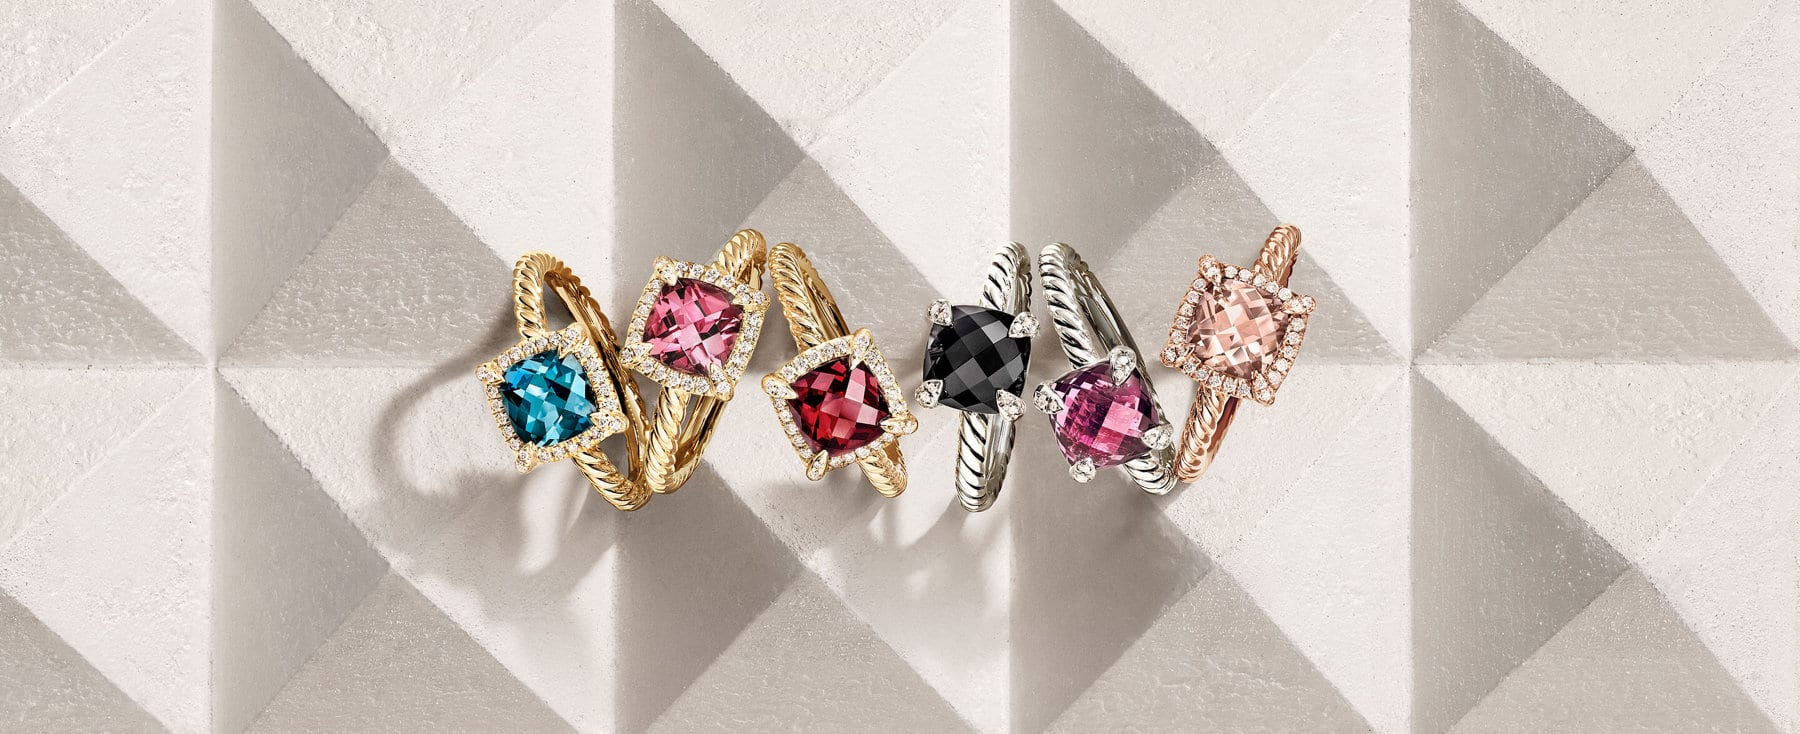 A color photograph shows an overhead shot of nine David Yurman women's rings in a horizontal stack atop a beige-hued stone surface with pyramid-shaped protrusions. The women's rings are crafted from 18K yellow gold with white diamonds and with or without rubies, a cultured pearl or garnet.